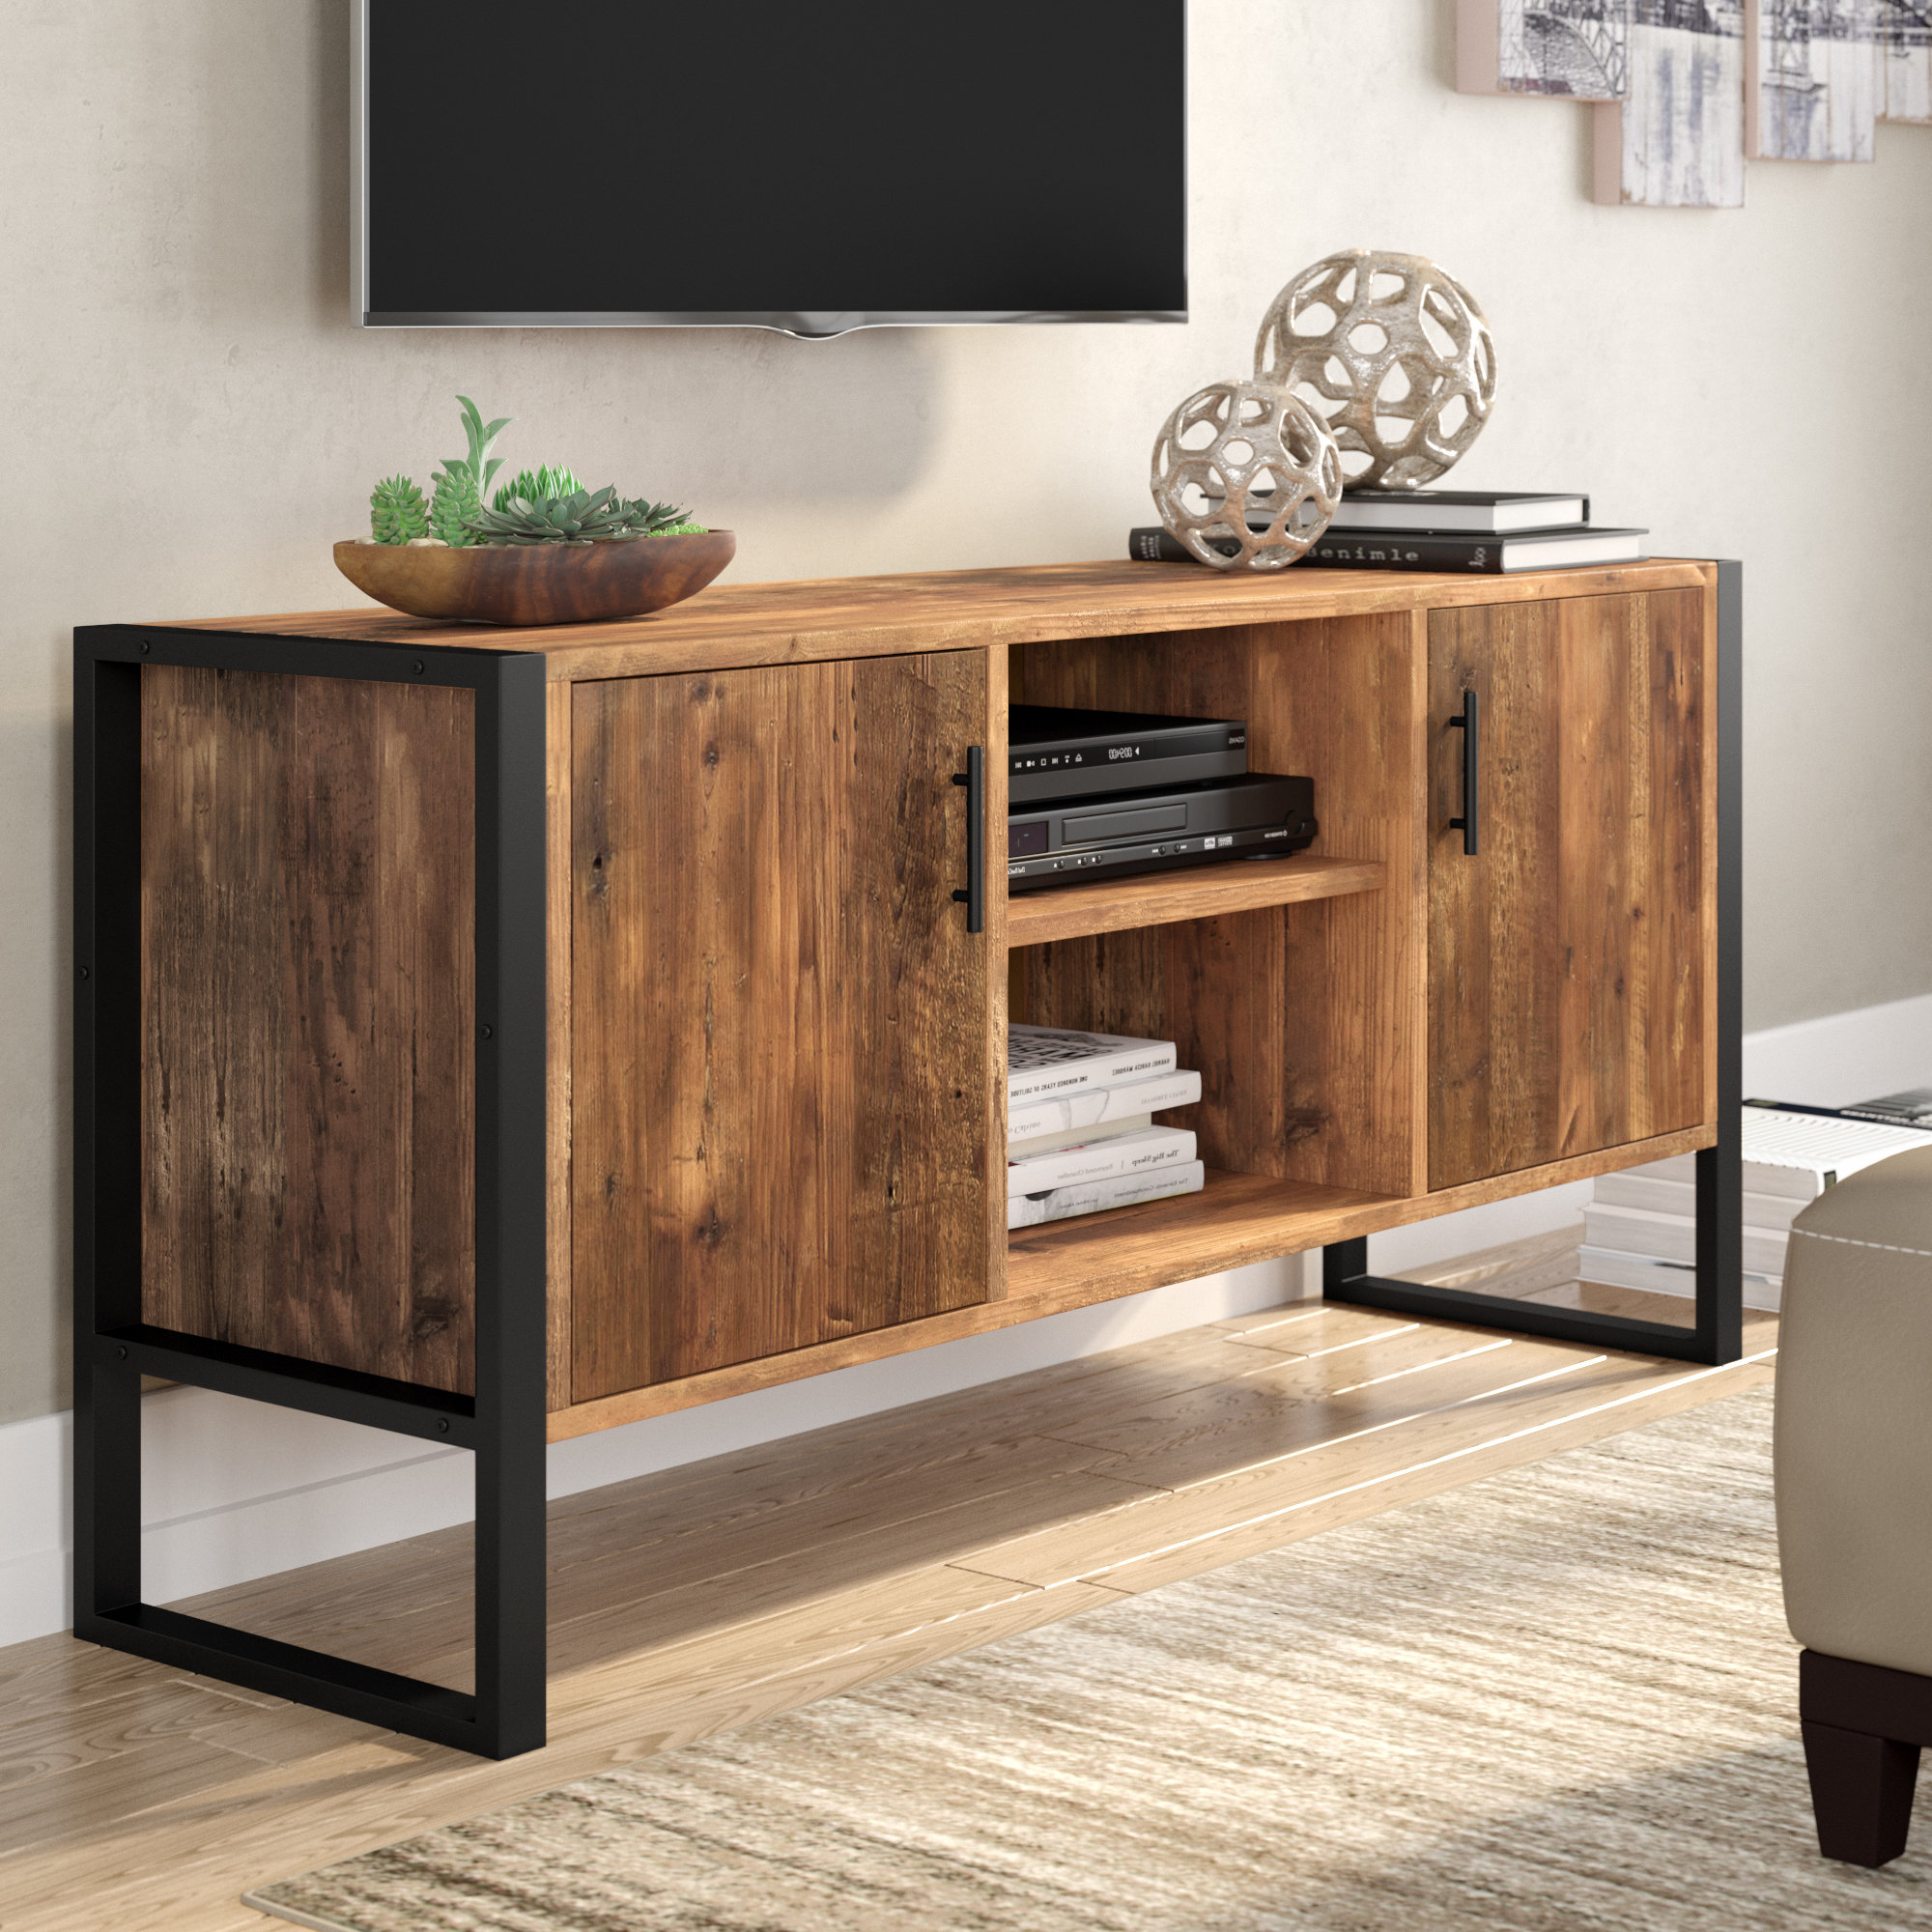 """Rochester Tv Stand For Tvs Up To 70"""" & Reviews   Joss & Main For Walton Grey 60 Inch Tv Stands (View 11 of 20)"""